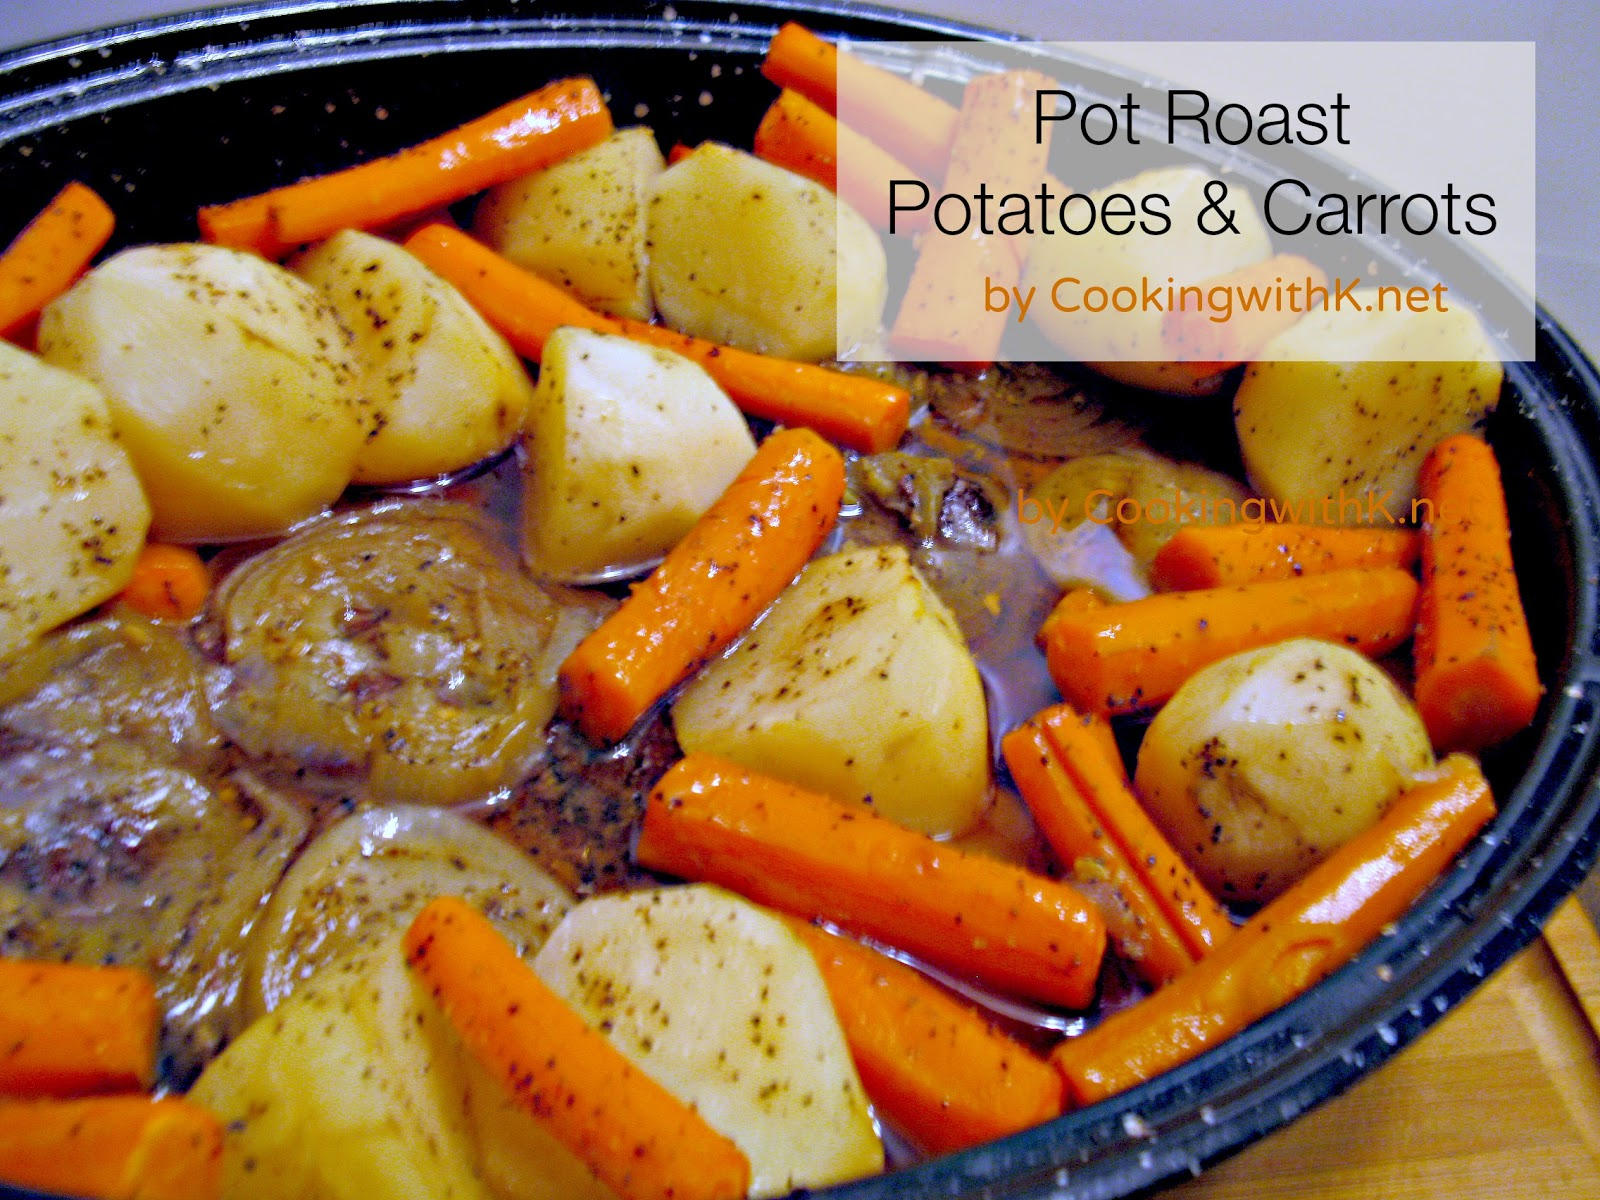 Potato carrot recipes oven